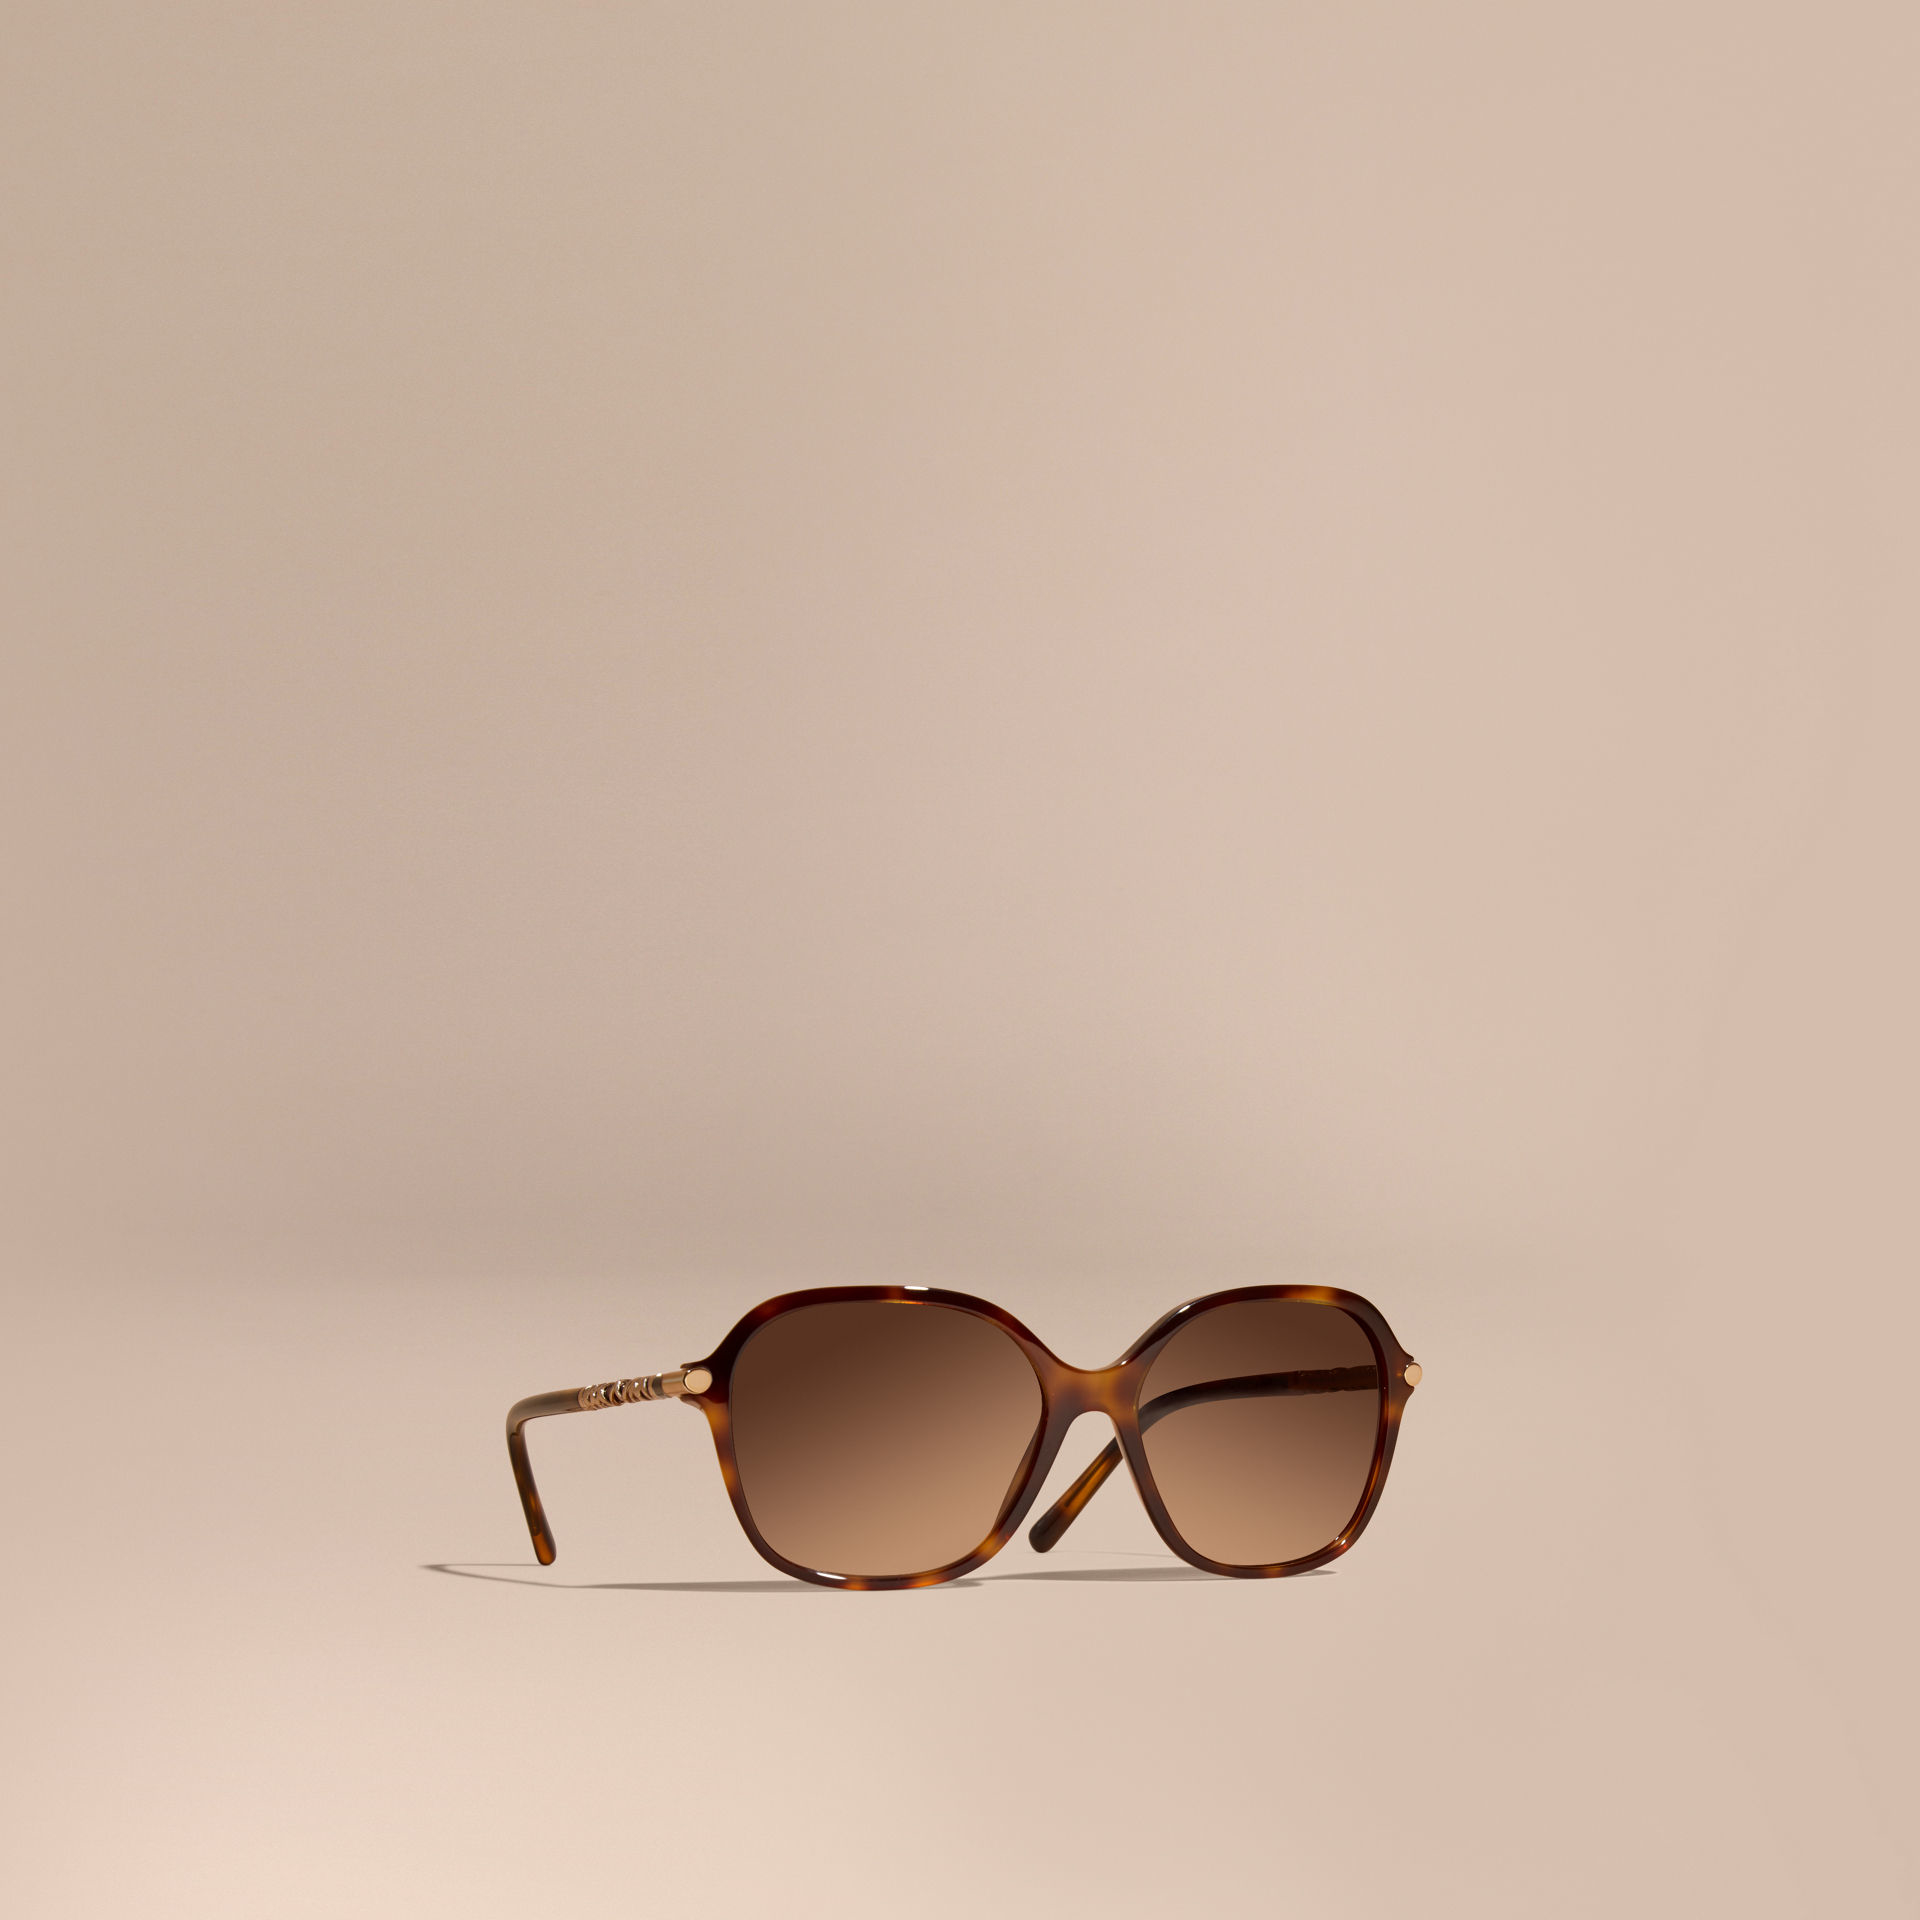 0a23005a1bf Lyst - Burberry Check Detail Round Frame Sunglasses Light Russet ...